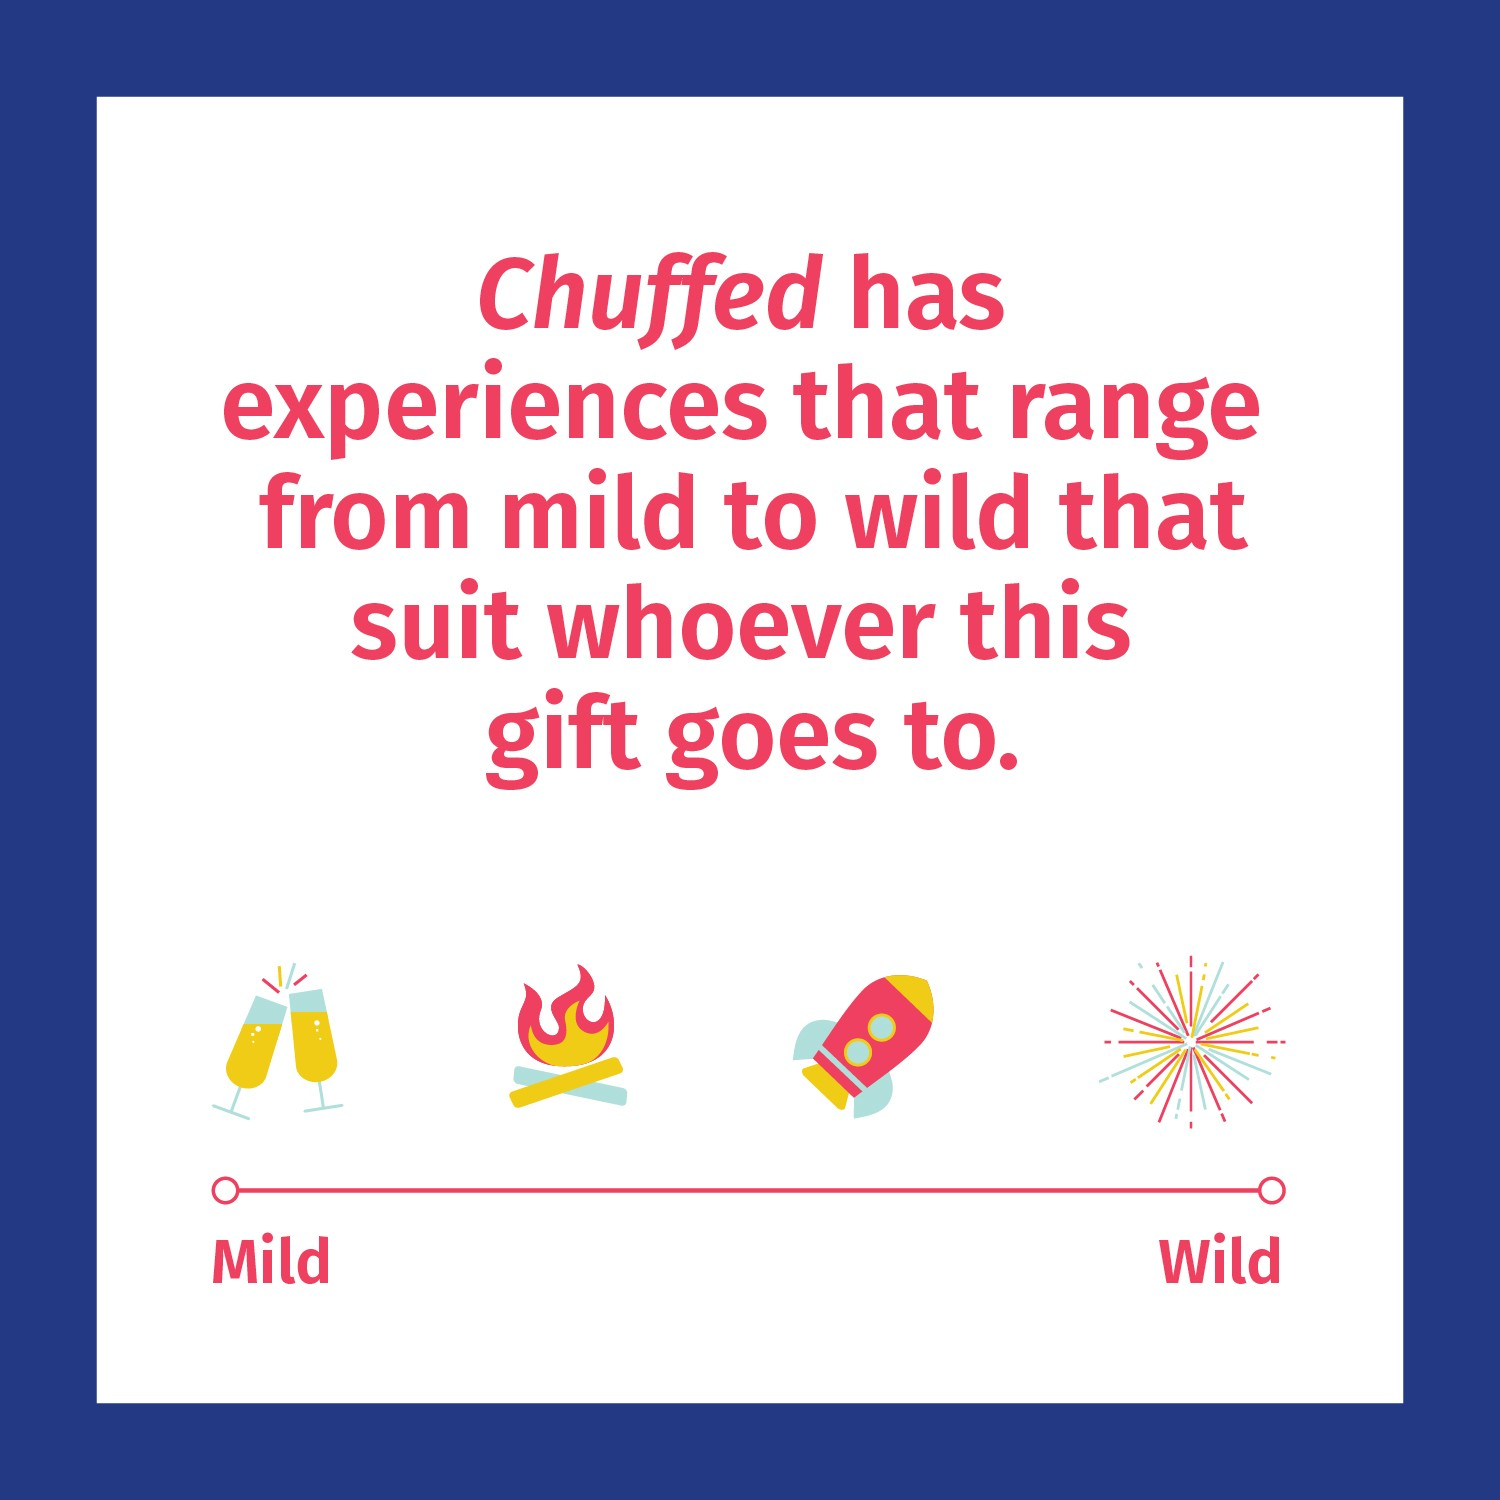 Chuffed gift experiences range from mild to wild